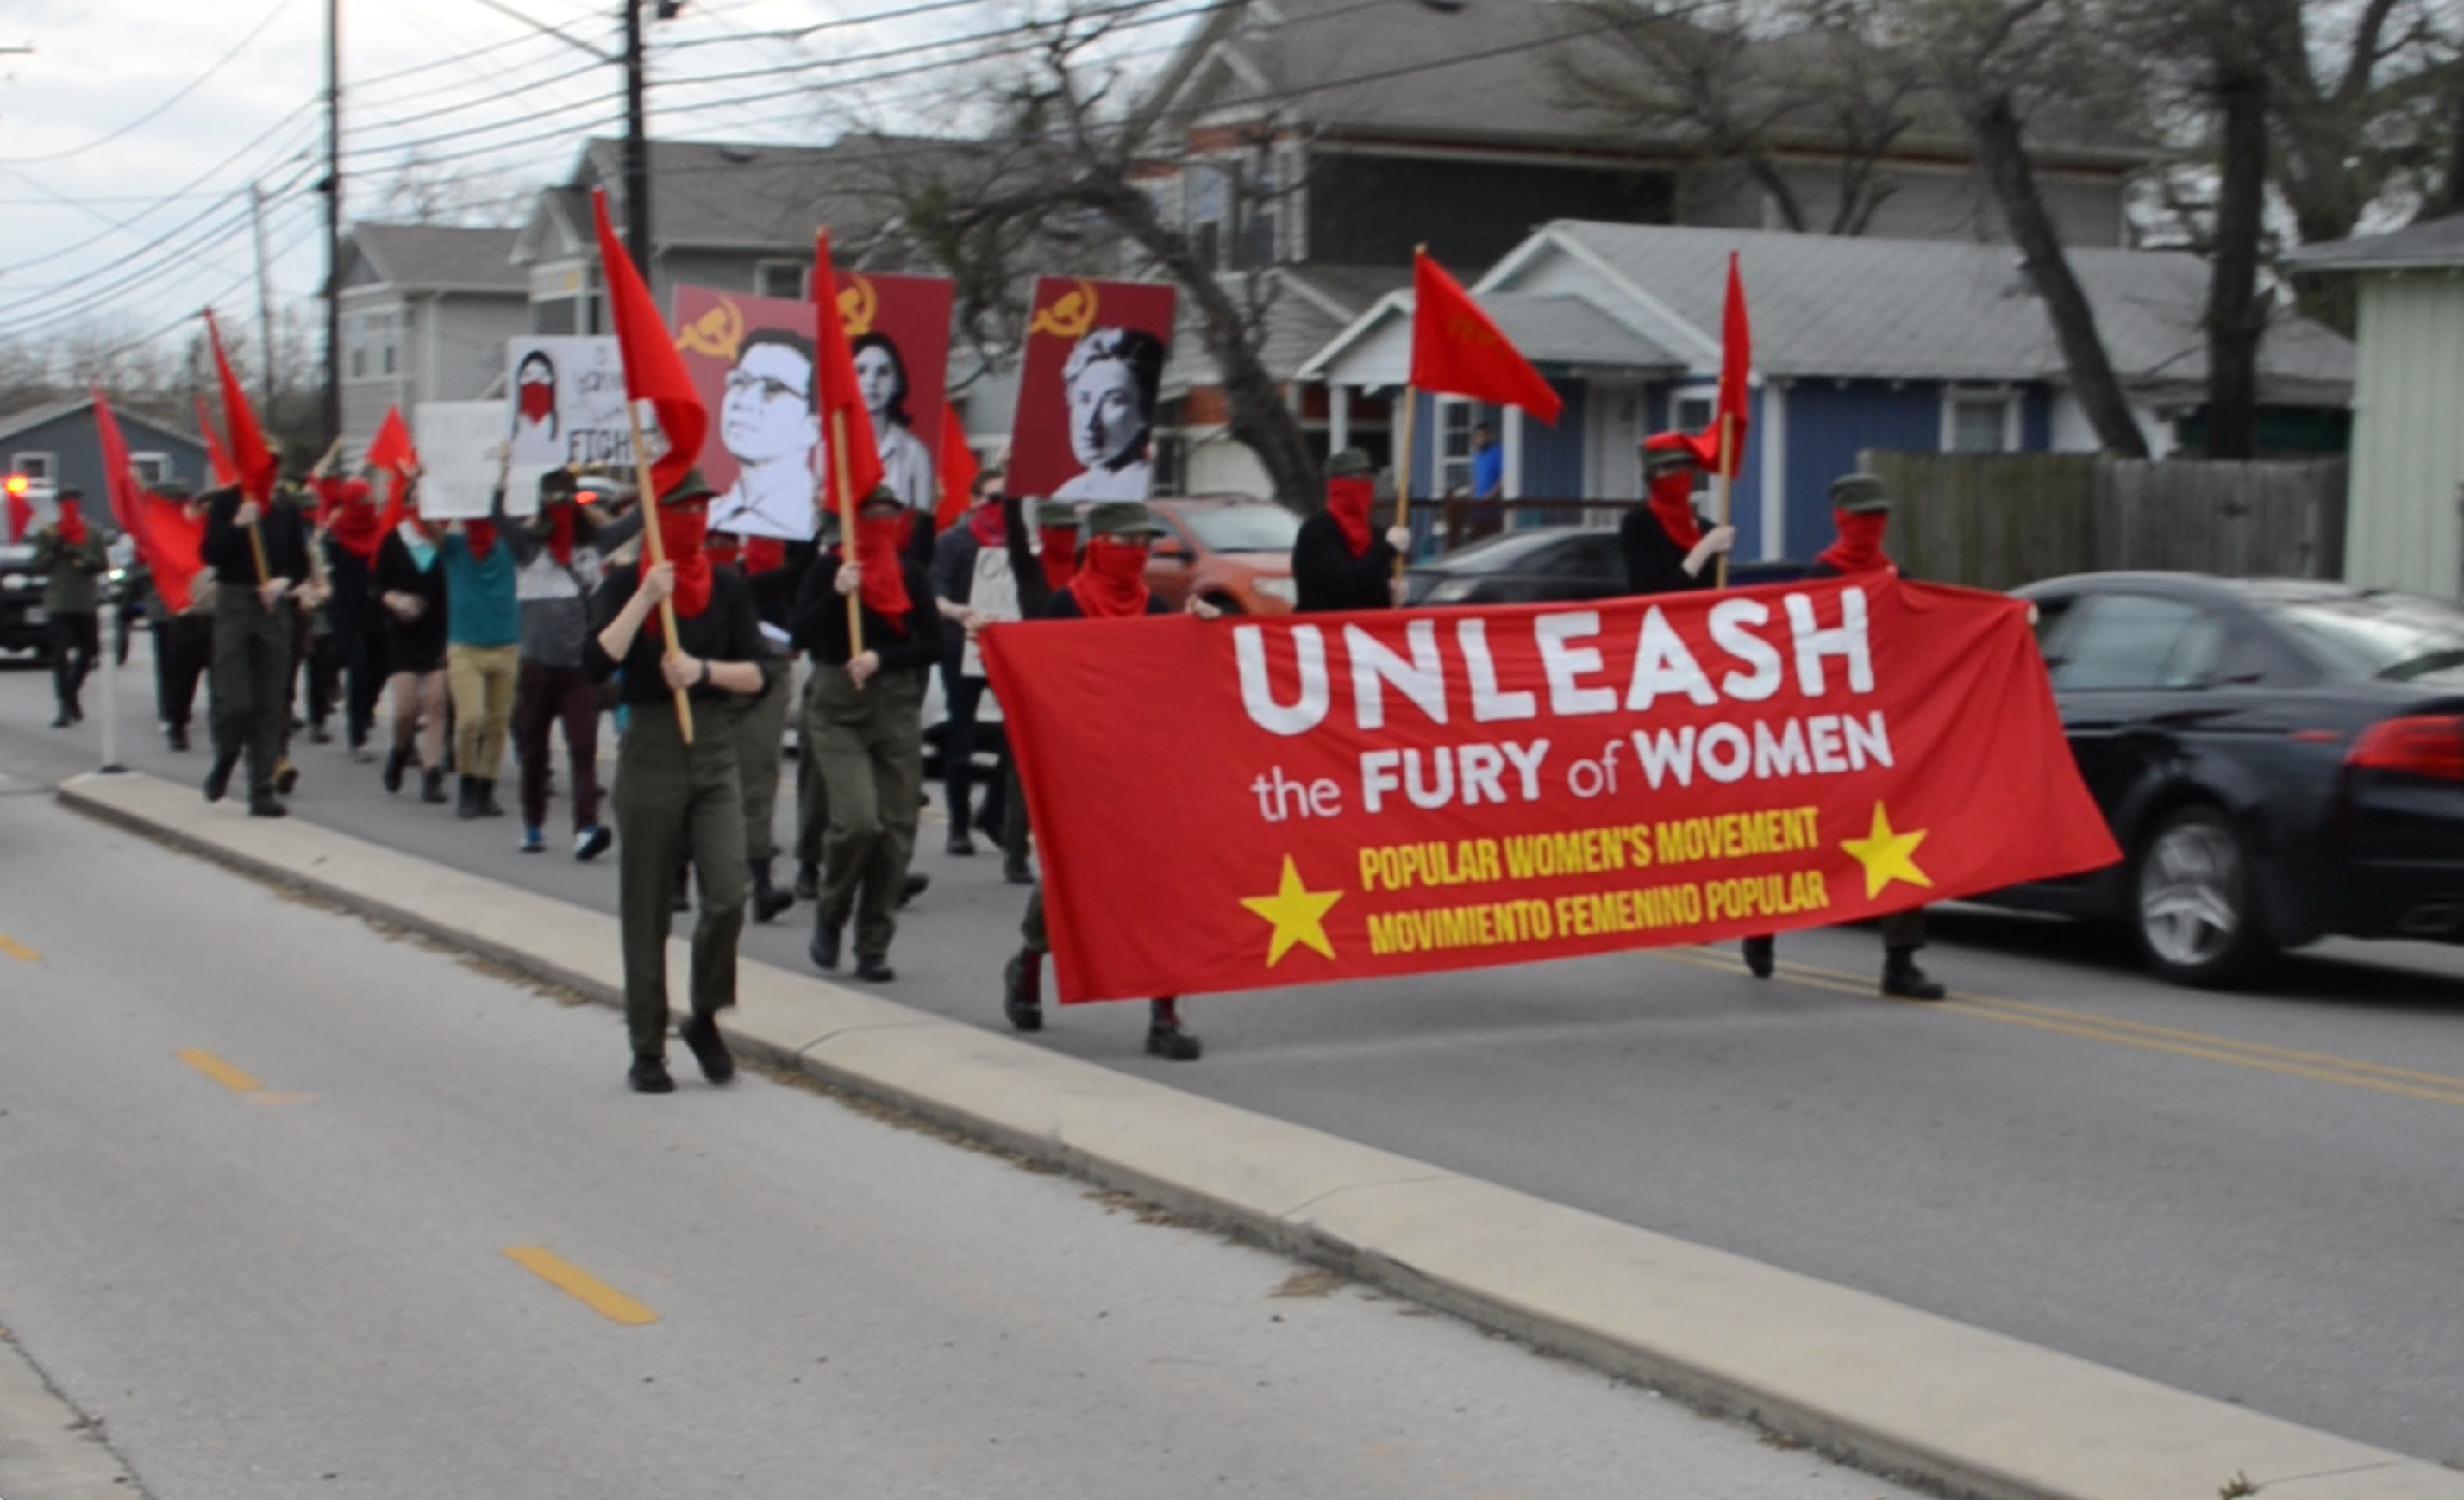 AUSTIN: International Working Women's Day March Clashes with Fascists, Police Make Arrests